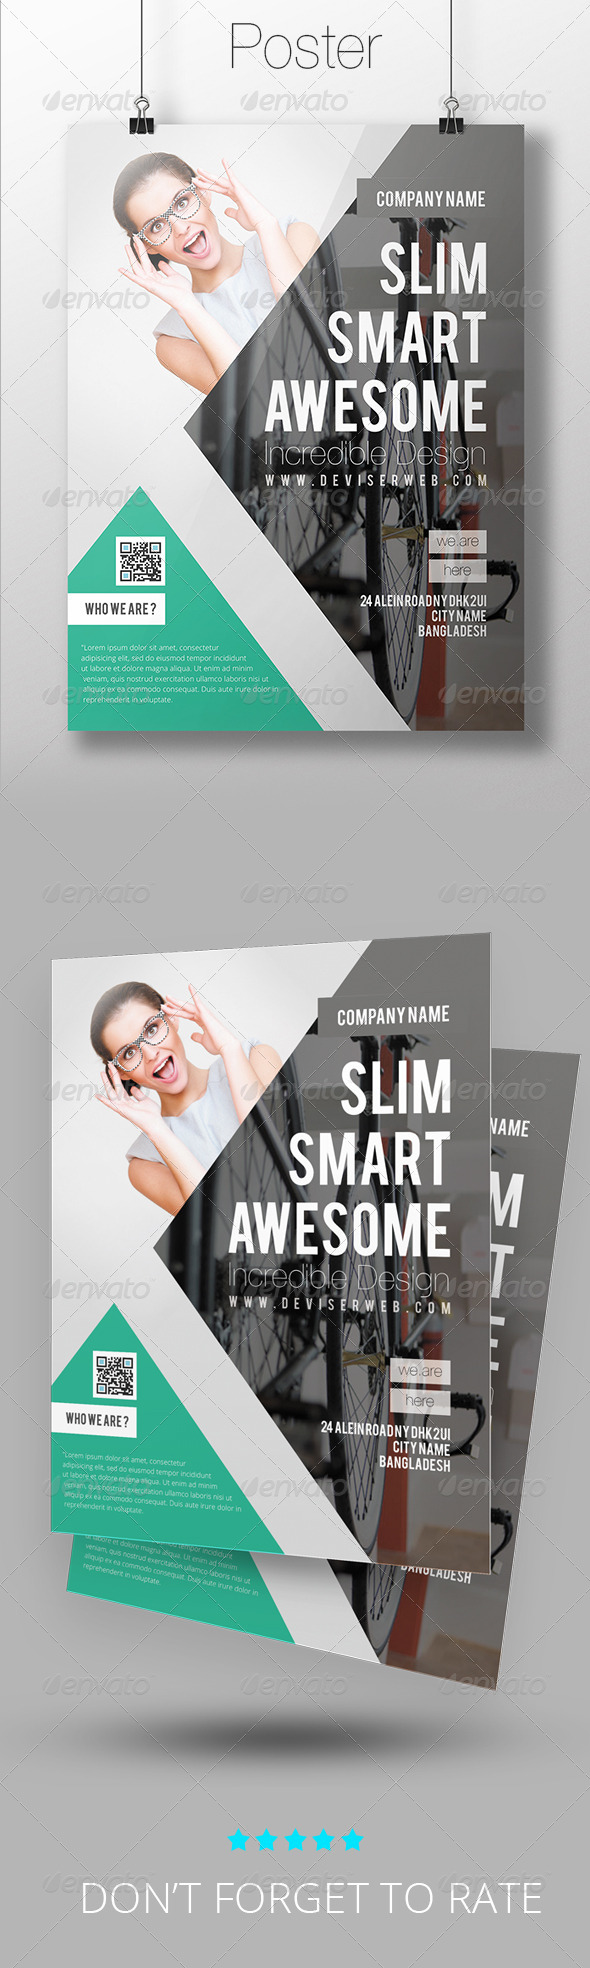 GraphicRiver Poster Template 7397595